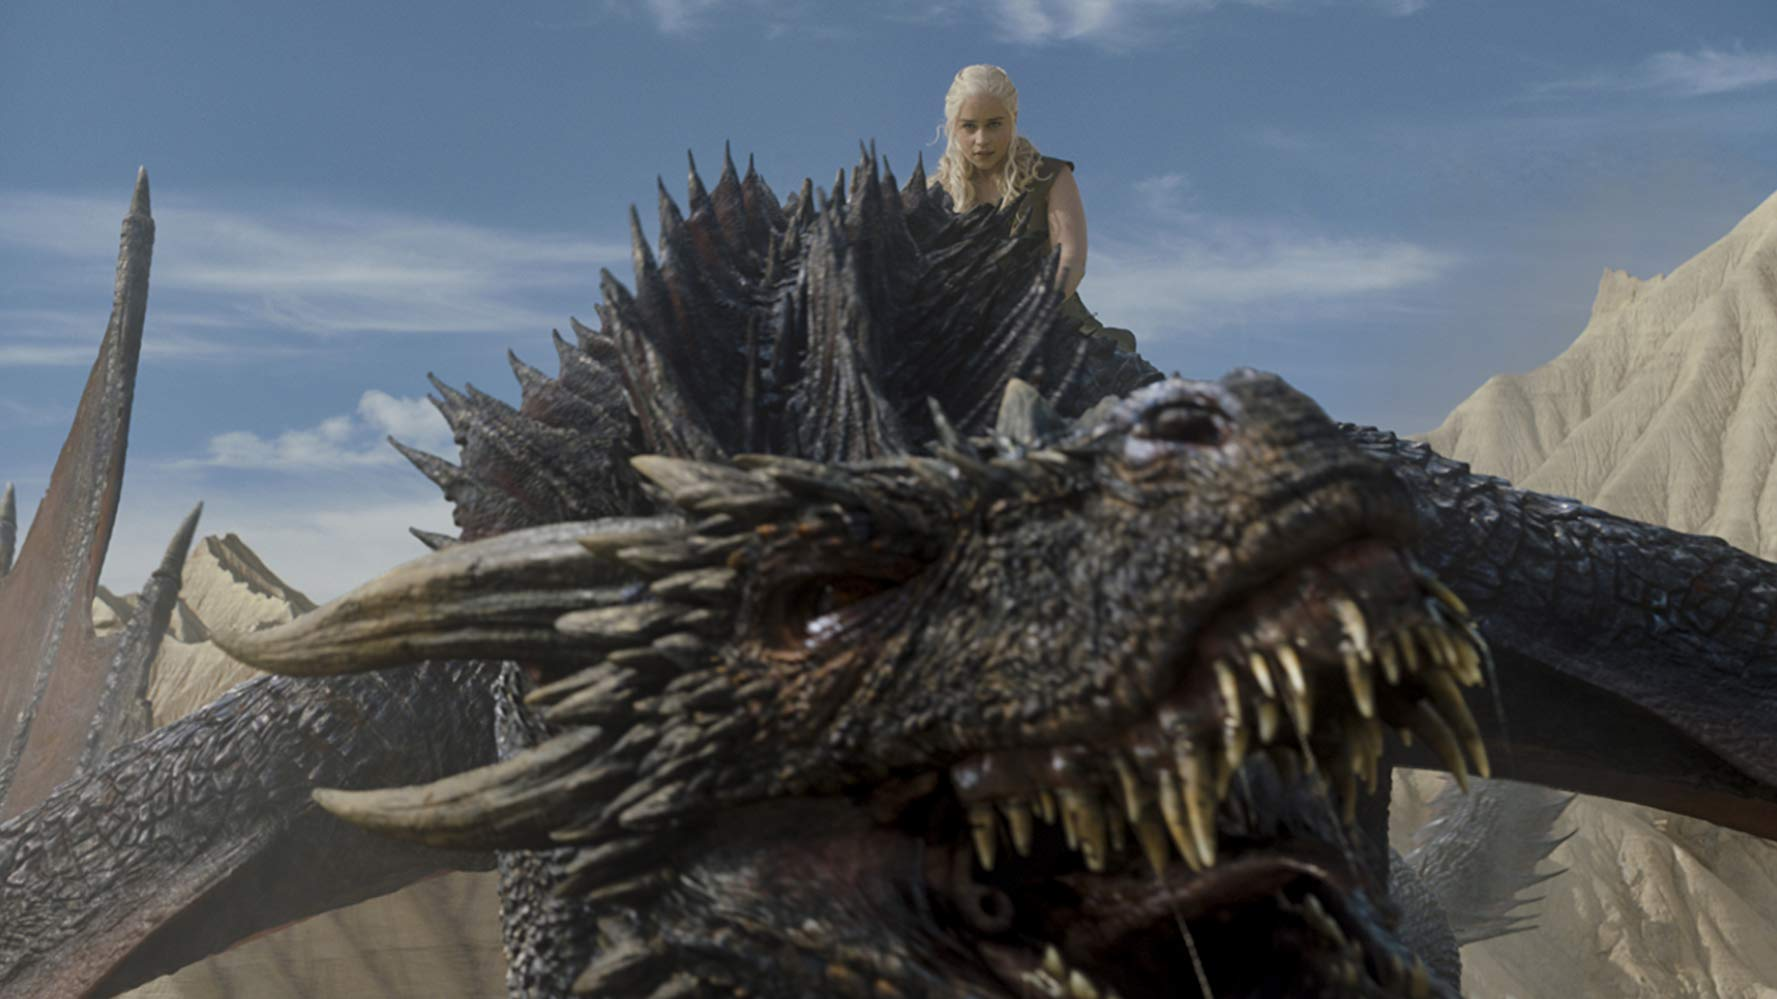 Emilia Clarke (Daenerys Targaryen) riding Drogon into battle in 'Game of Thrones'. (Source: IMDB)